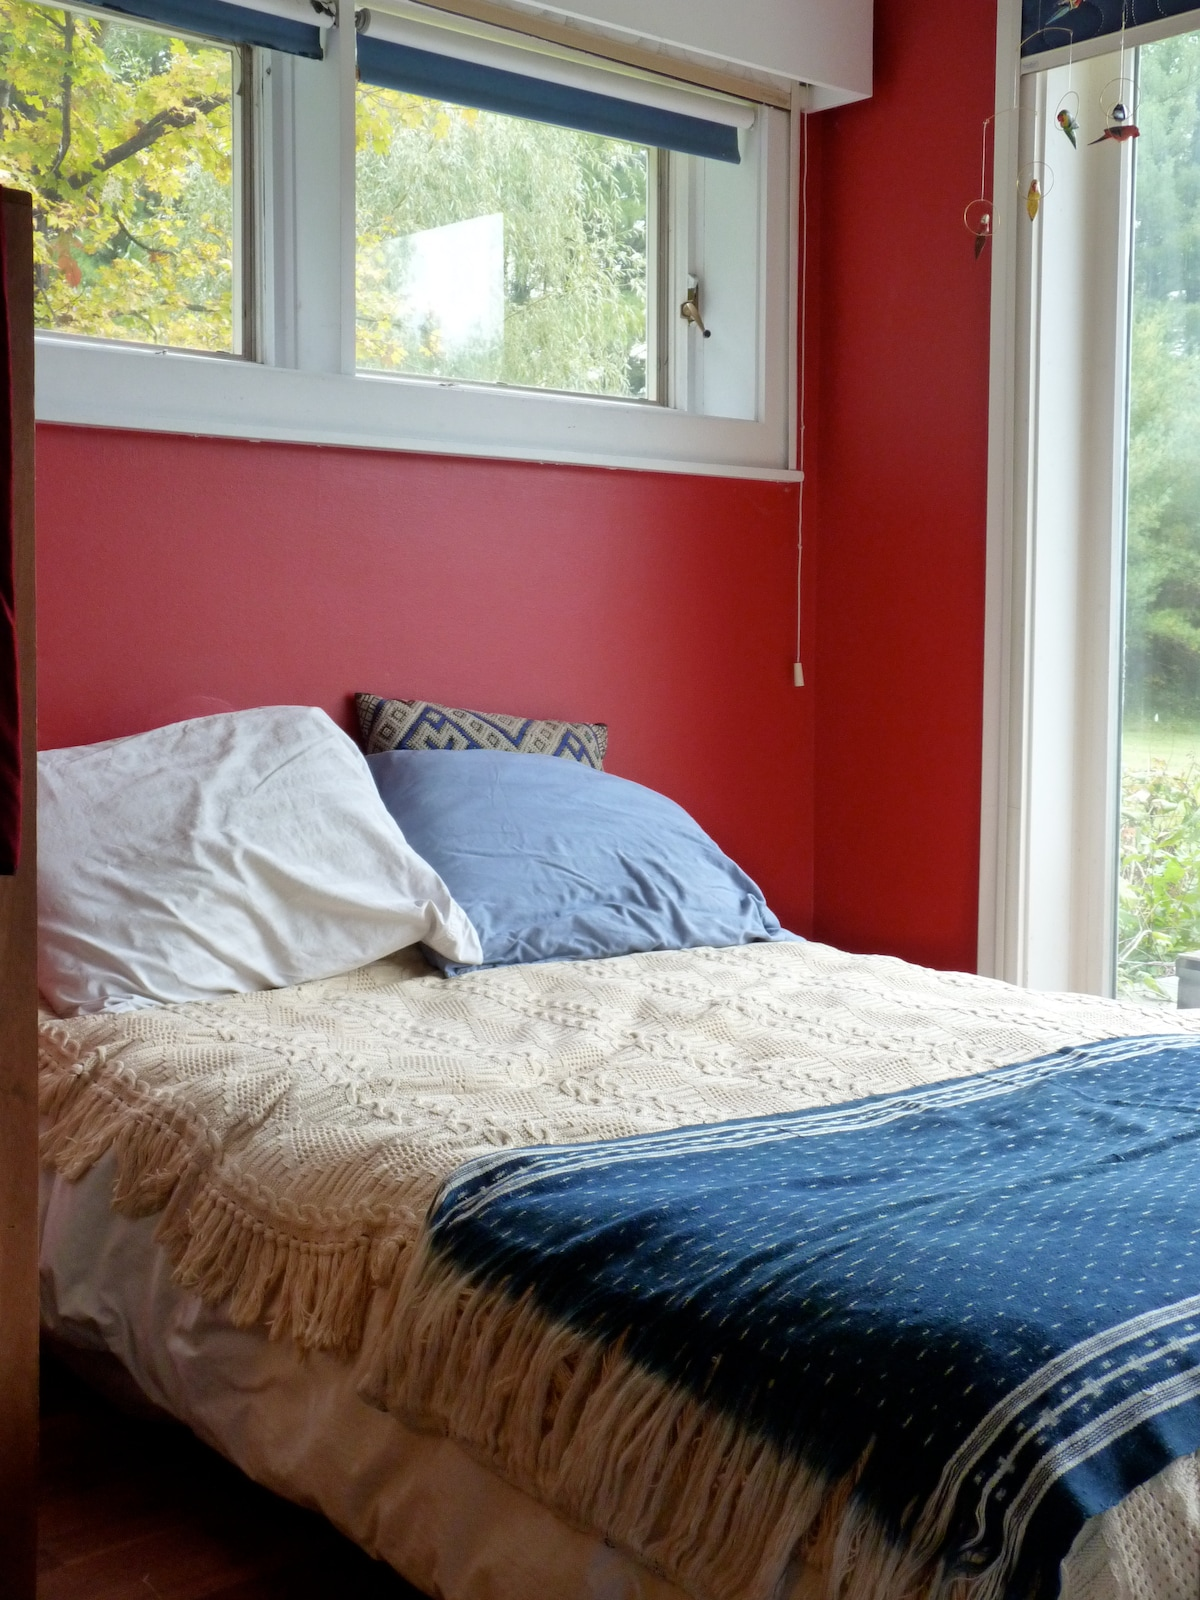 This bedroom has a double bed and sliding glass door looking out to the lawn.